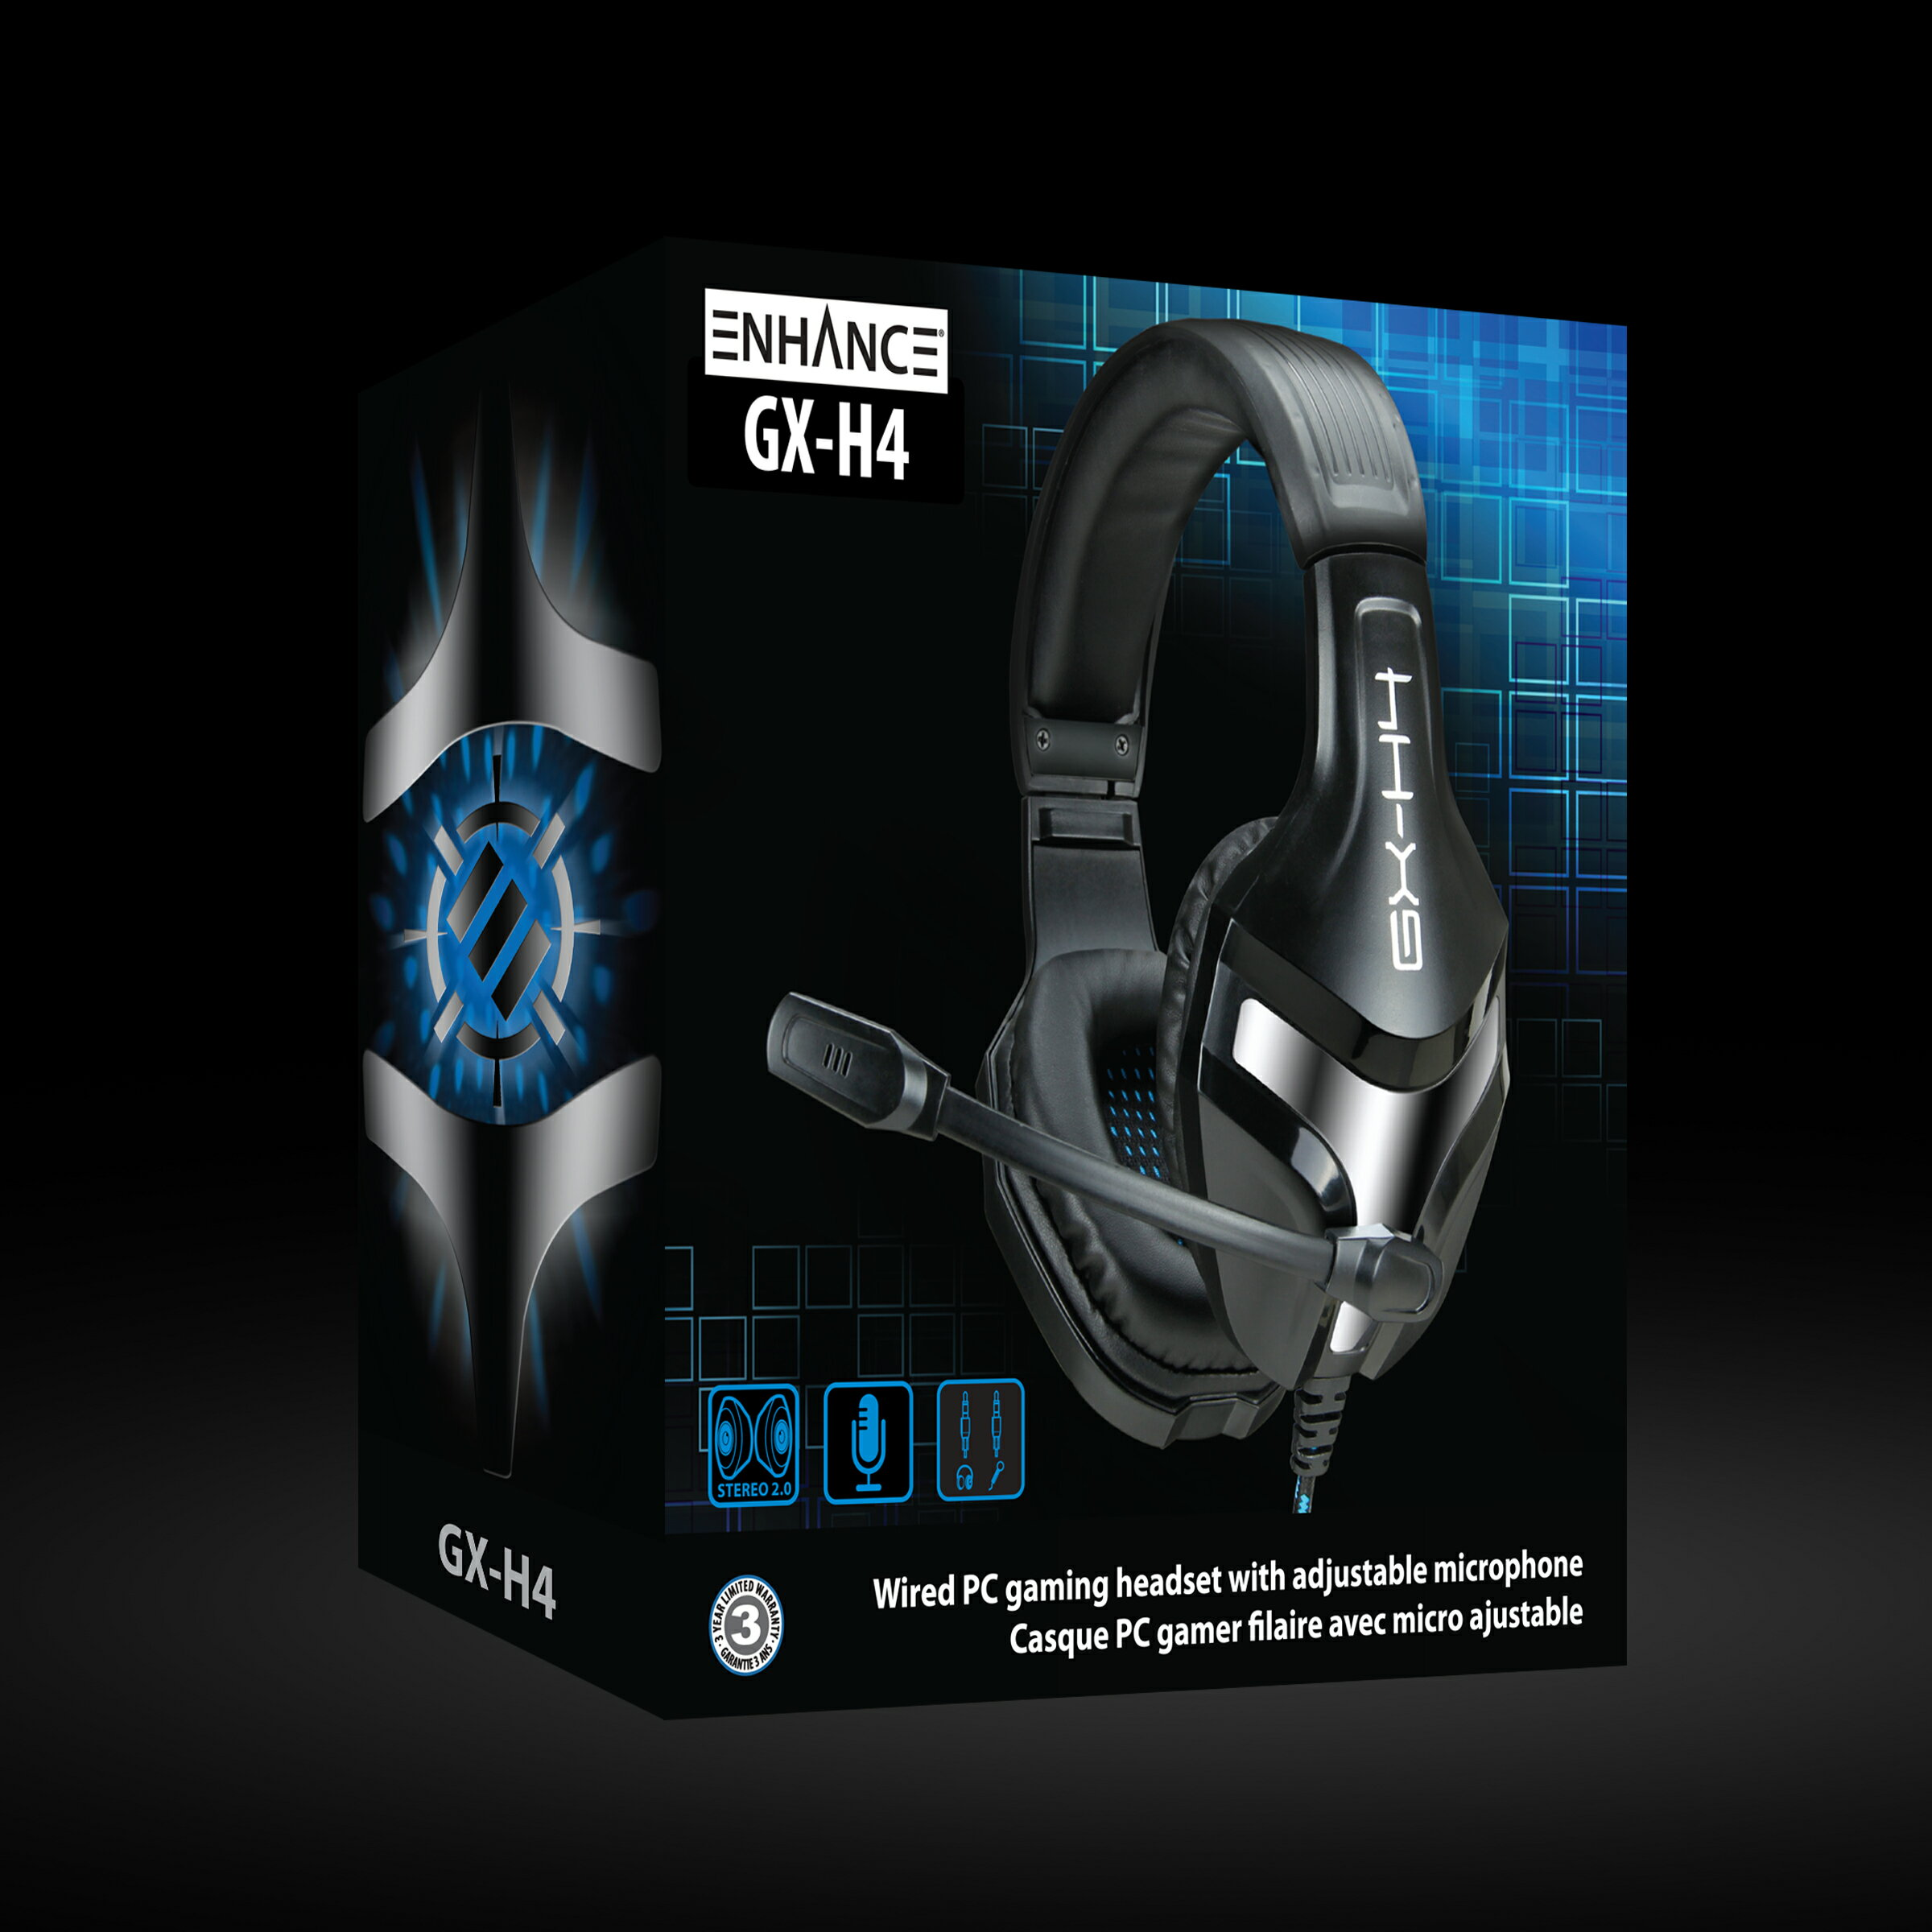 ENHANCE GX-H4 Stereo Gaming Headset with Adjustable Microphone &  Noise-Isolating Earphones 8